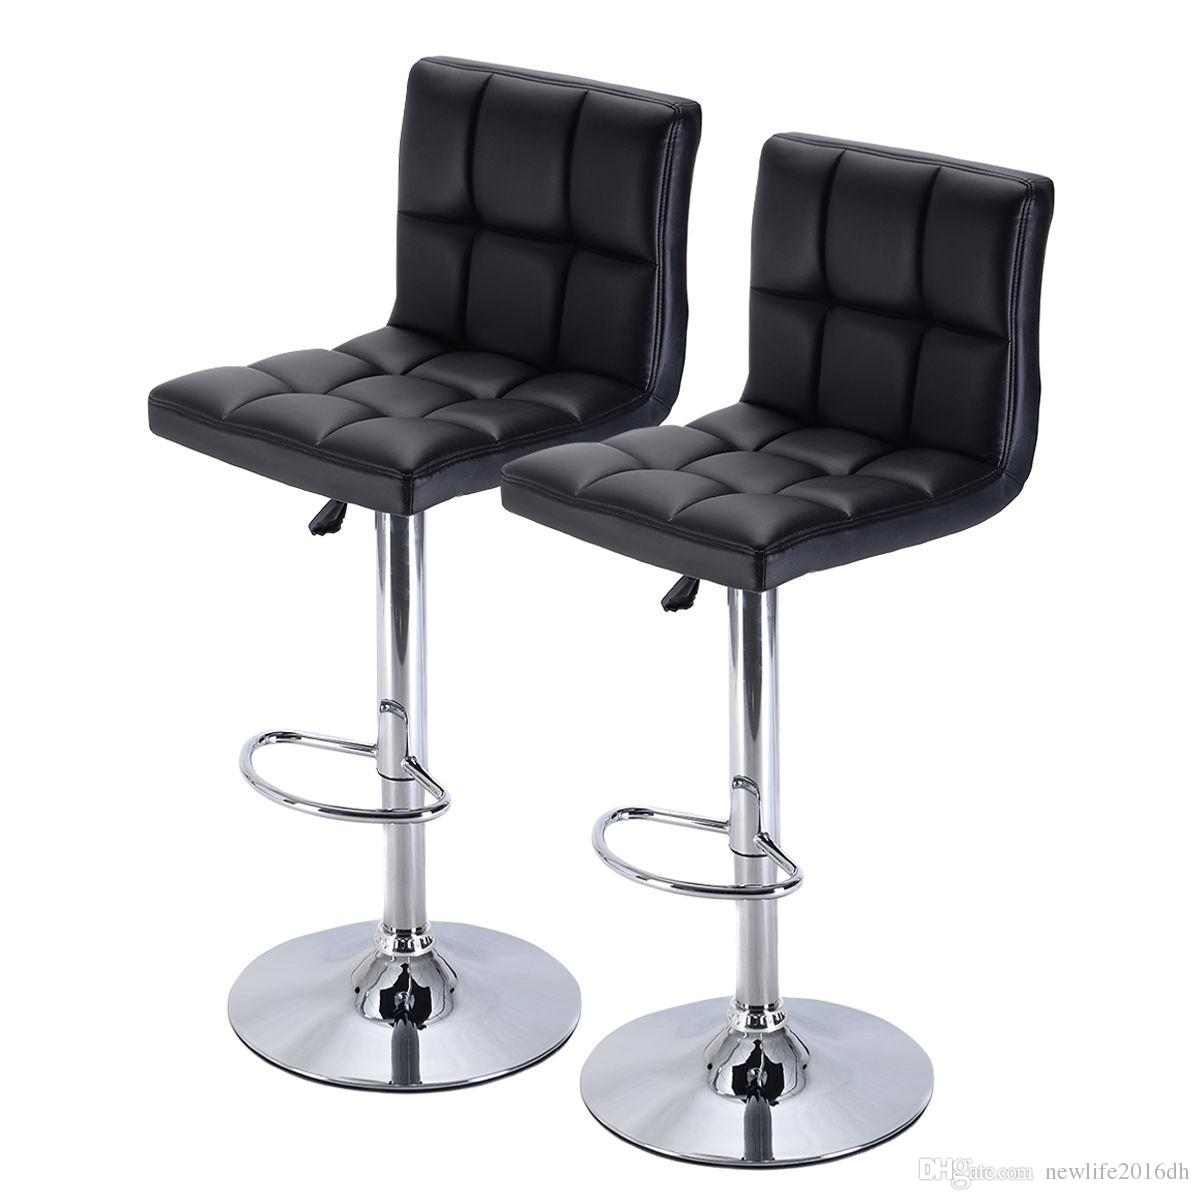 Of 2 bar stool luxurious pu leather barstools chair with adjustable counter swivel pub new from newlife2016dh 89 45 dhgate com